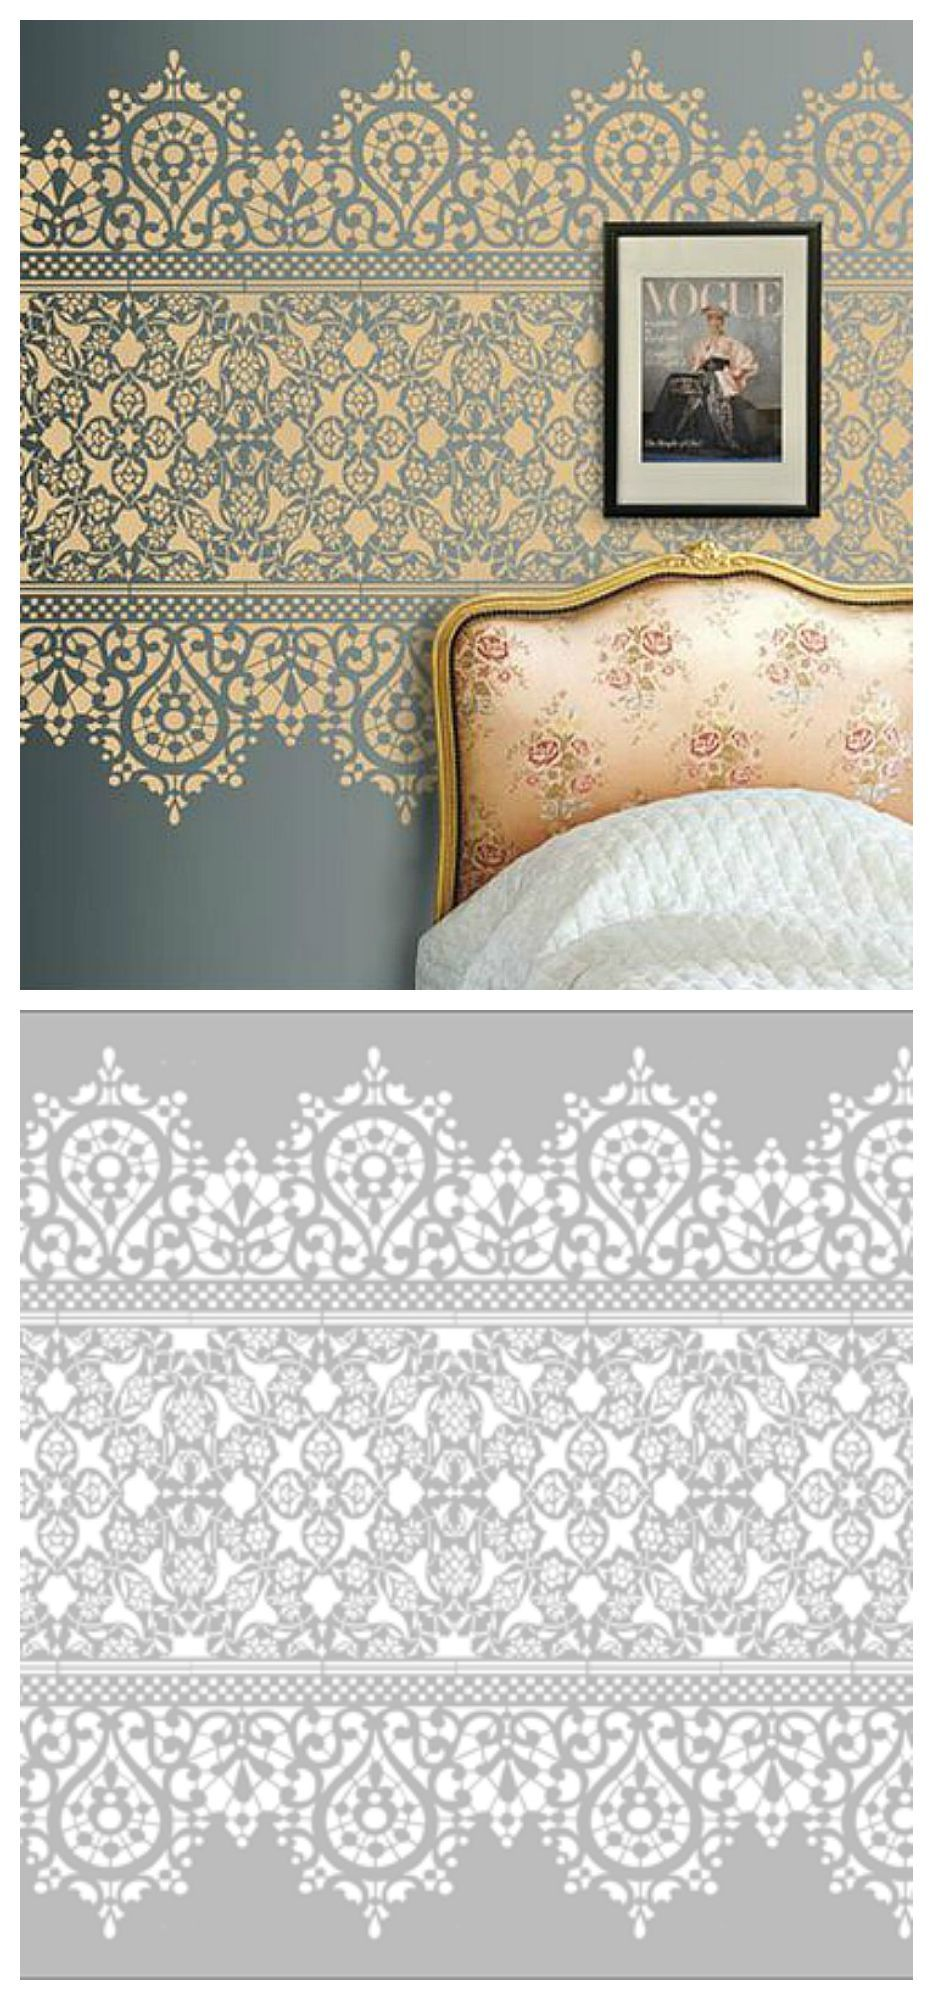 Wall stencil lace wall stencil home decor diy pinterest wall stencil lace wall stencil amipublicfo Images